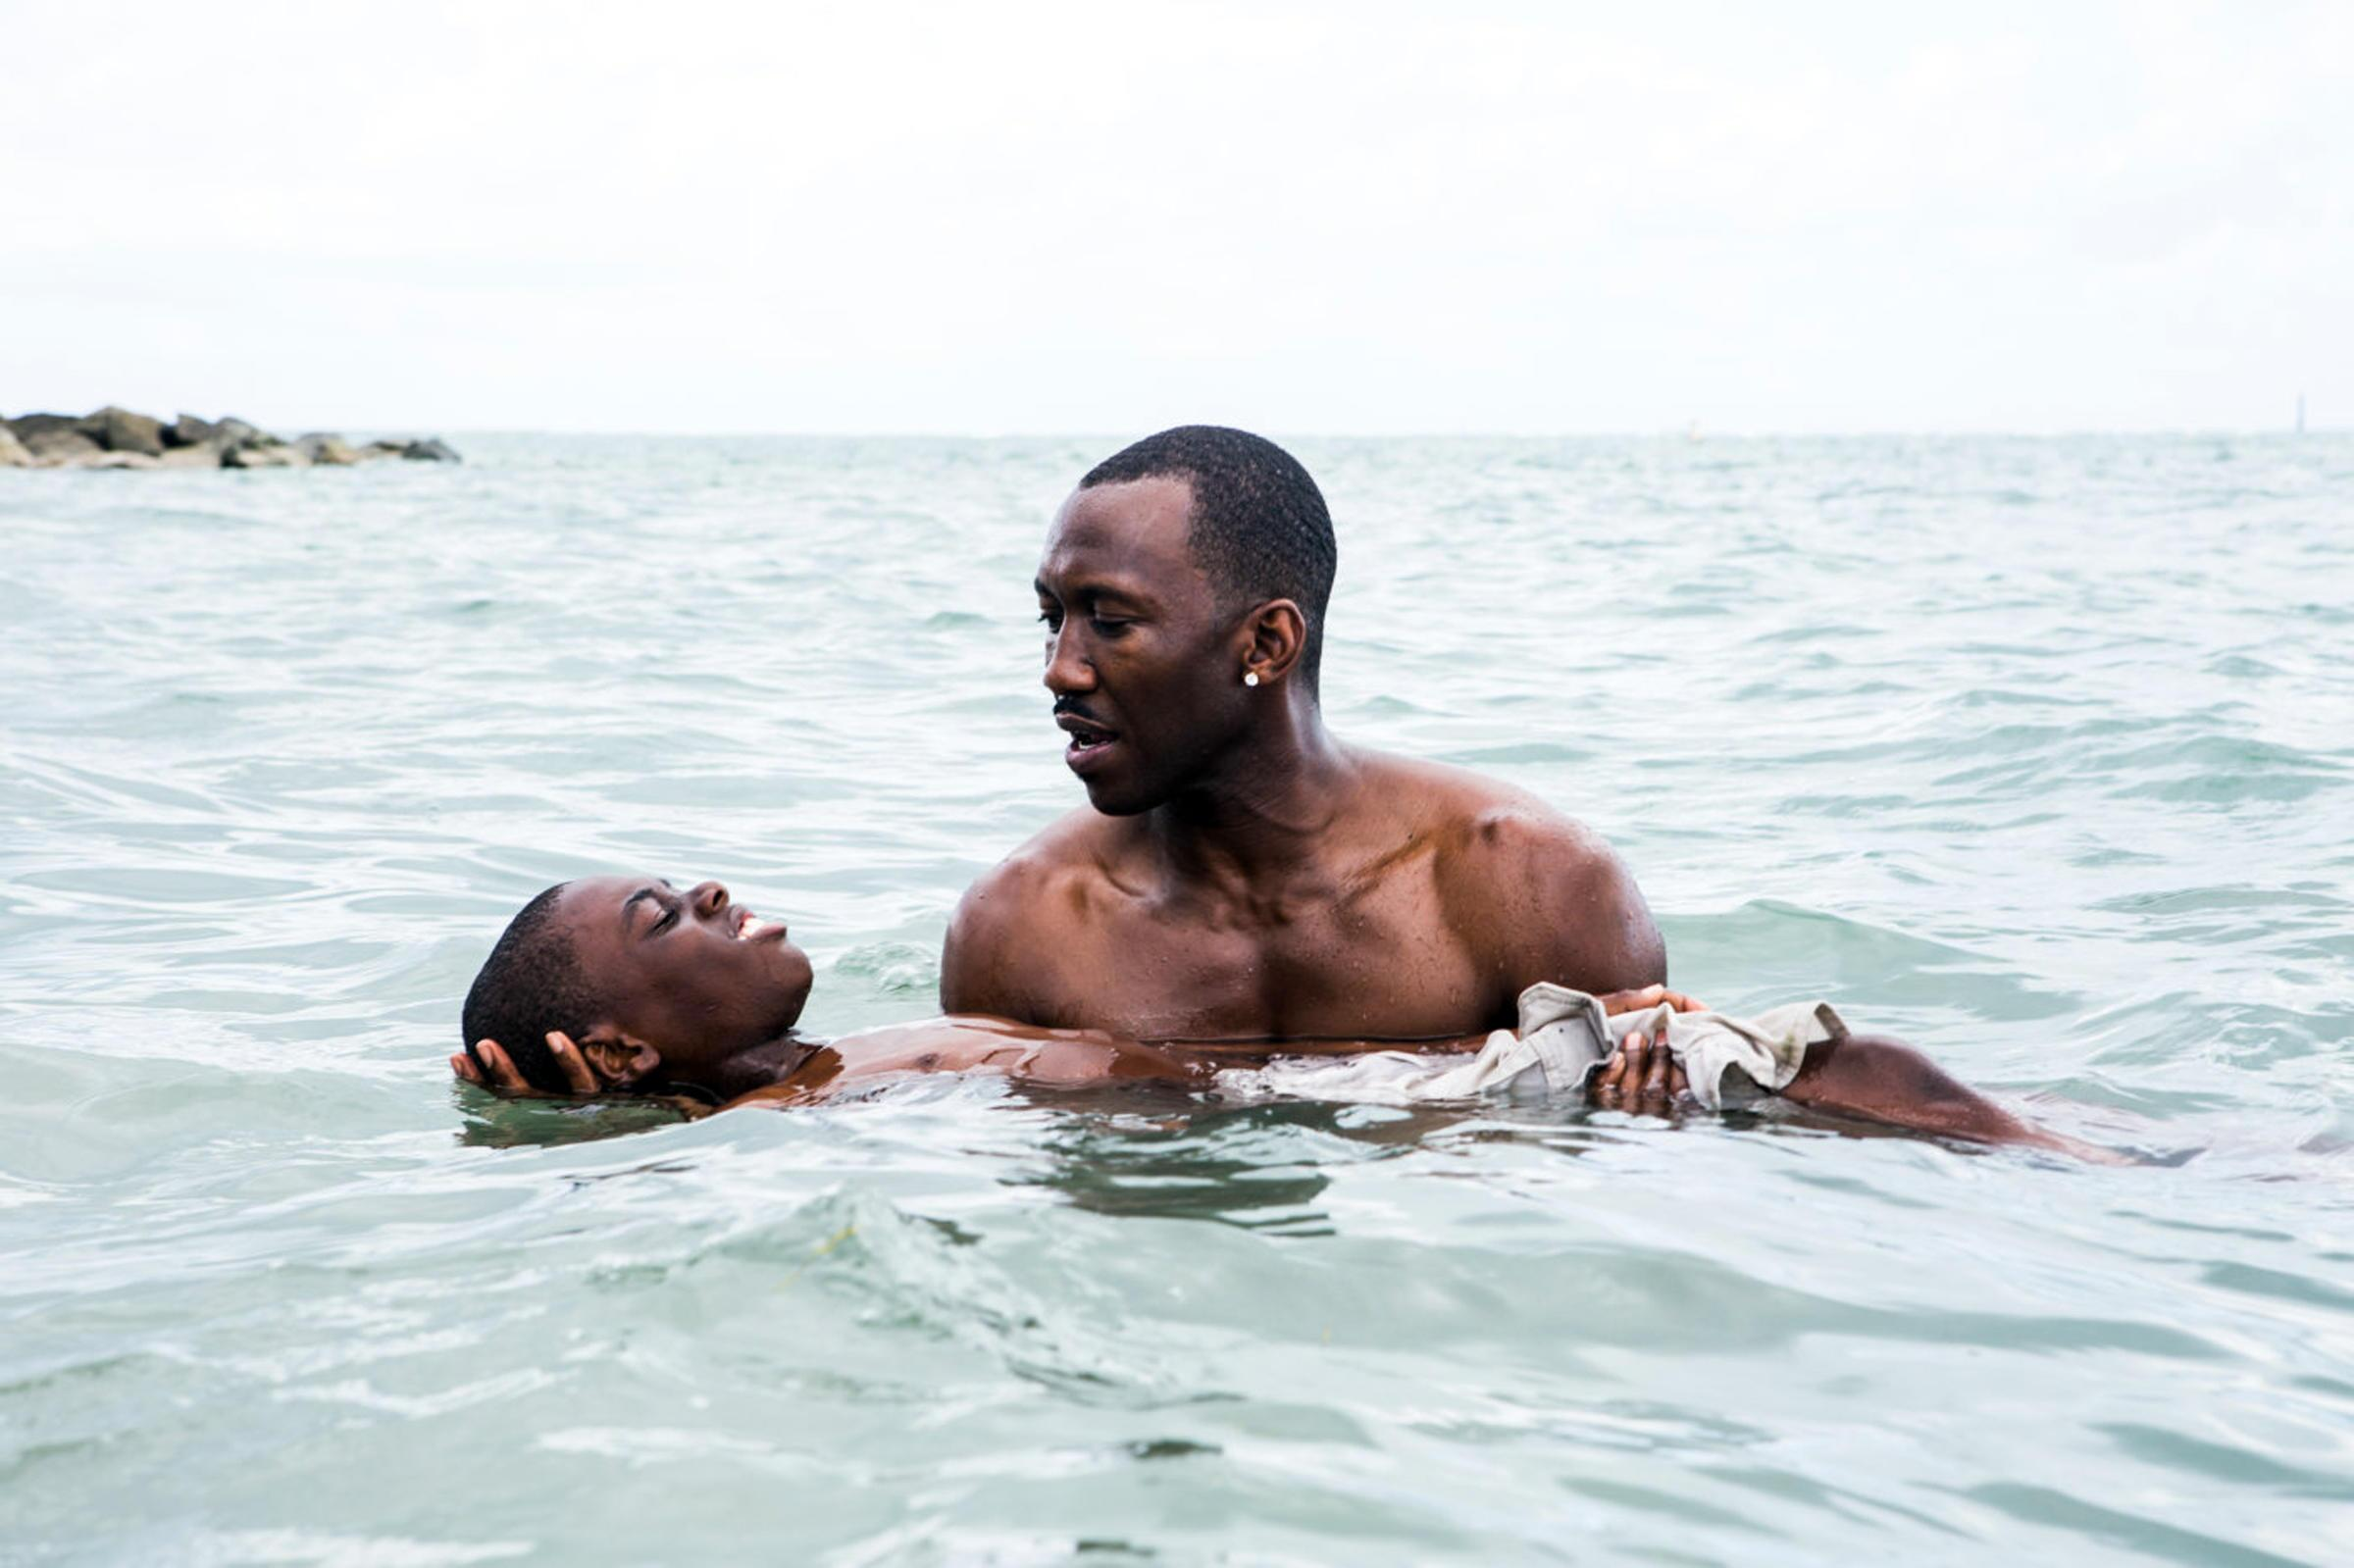 Moonlight is a 2016 American drama film written and directed by Barry Jenkins, based on the play In Moonlight Black Boys Look Blue by Tarell Alvin McCraney. The film stars Trevante Rhodes, Andre Holland, Janelle Monae, Ashton Sanders, Jharrel Jerome, Naom